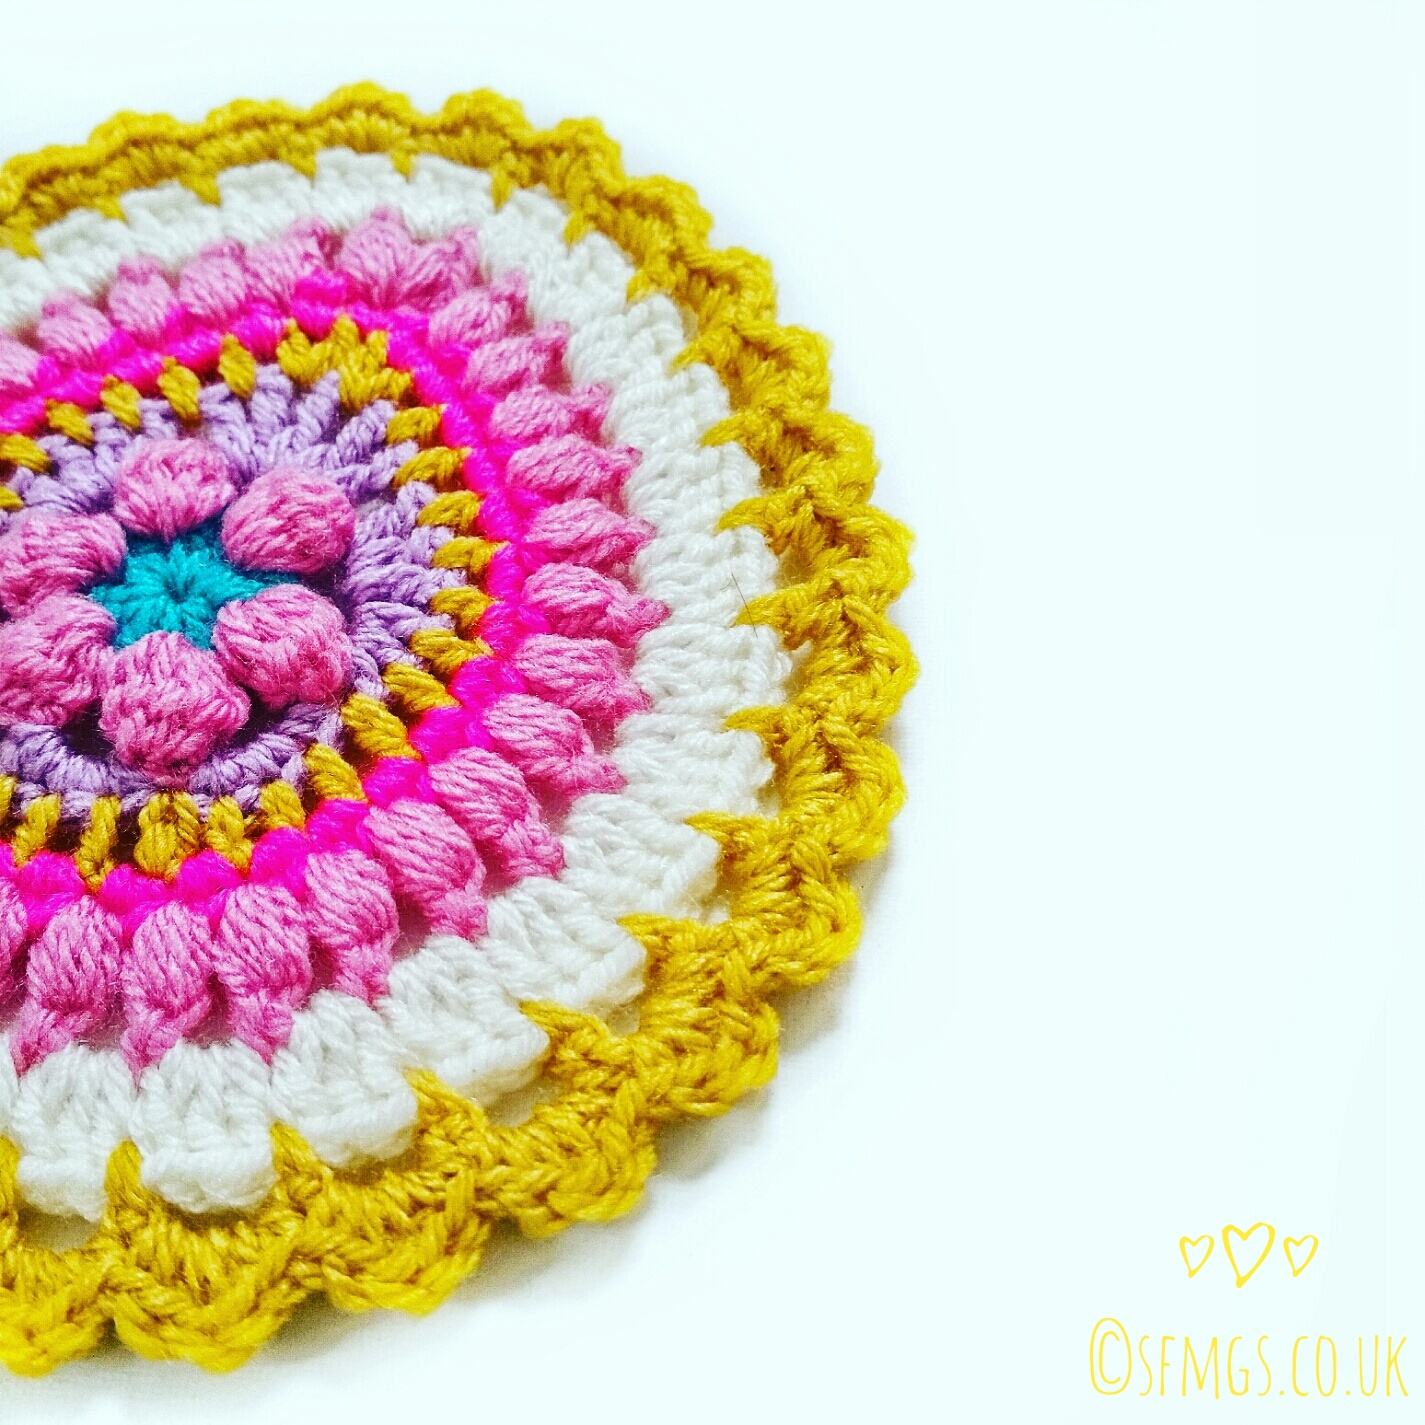 Set Free My Gypsy Soul | a Crochet Craft blog : Mini Easter Egg ...